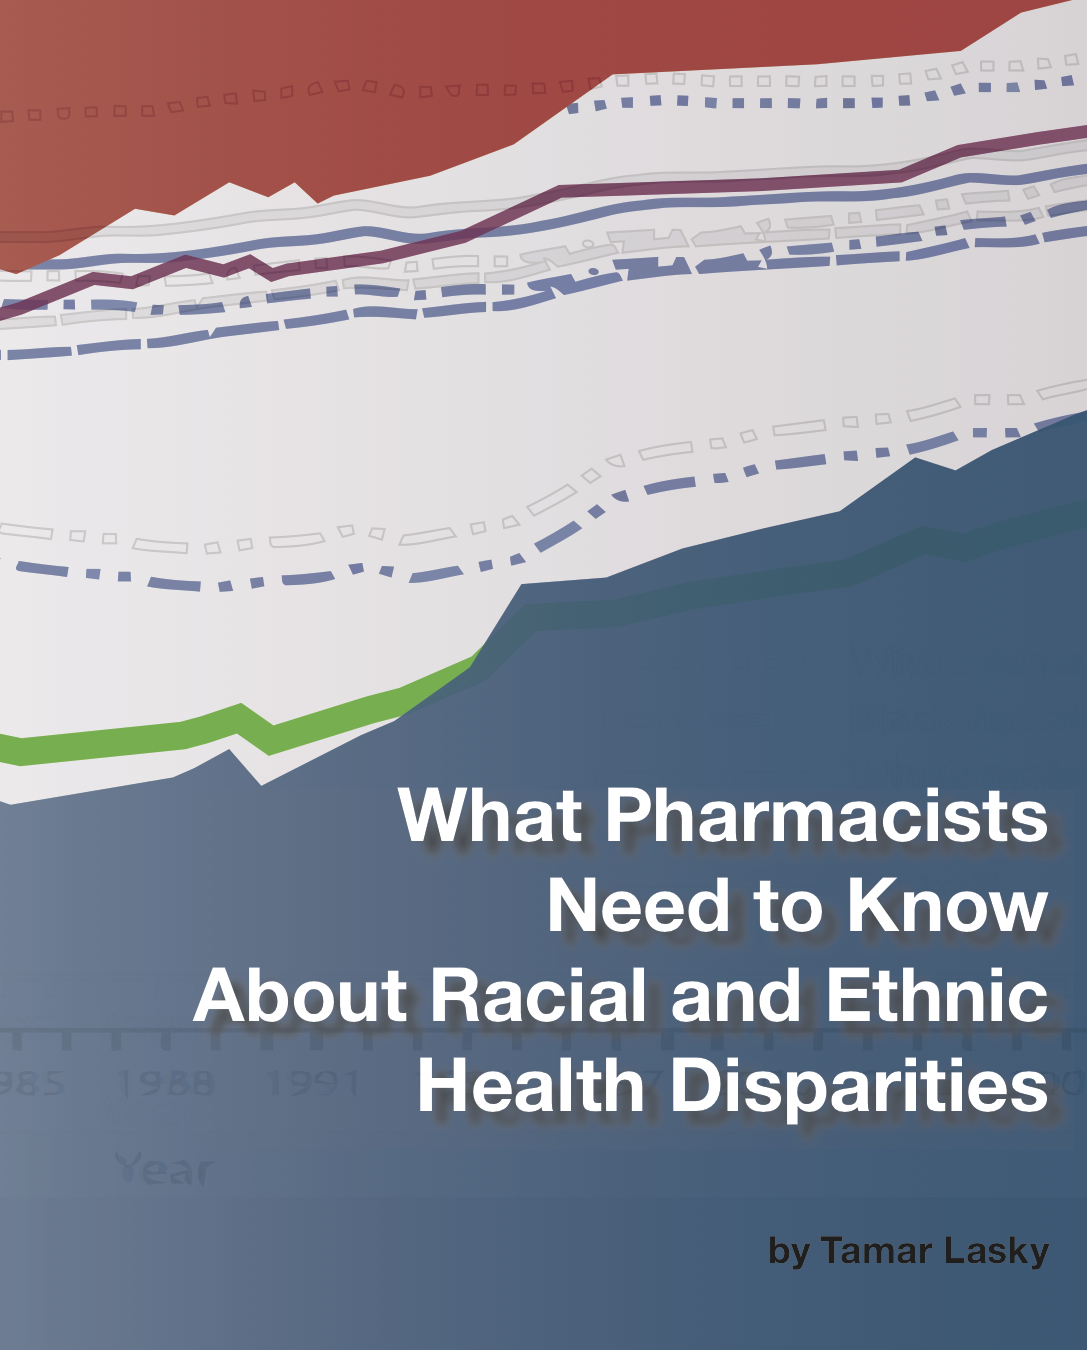 origins of health disparities in racial Disparities in health and health care not hhs action plan to reduce racial and ethnic health disparities kaiser family foundation, health and access to.